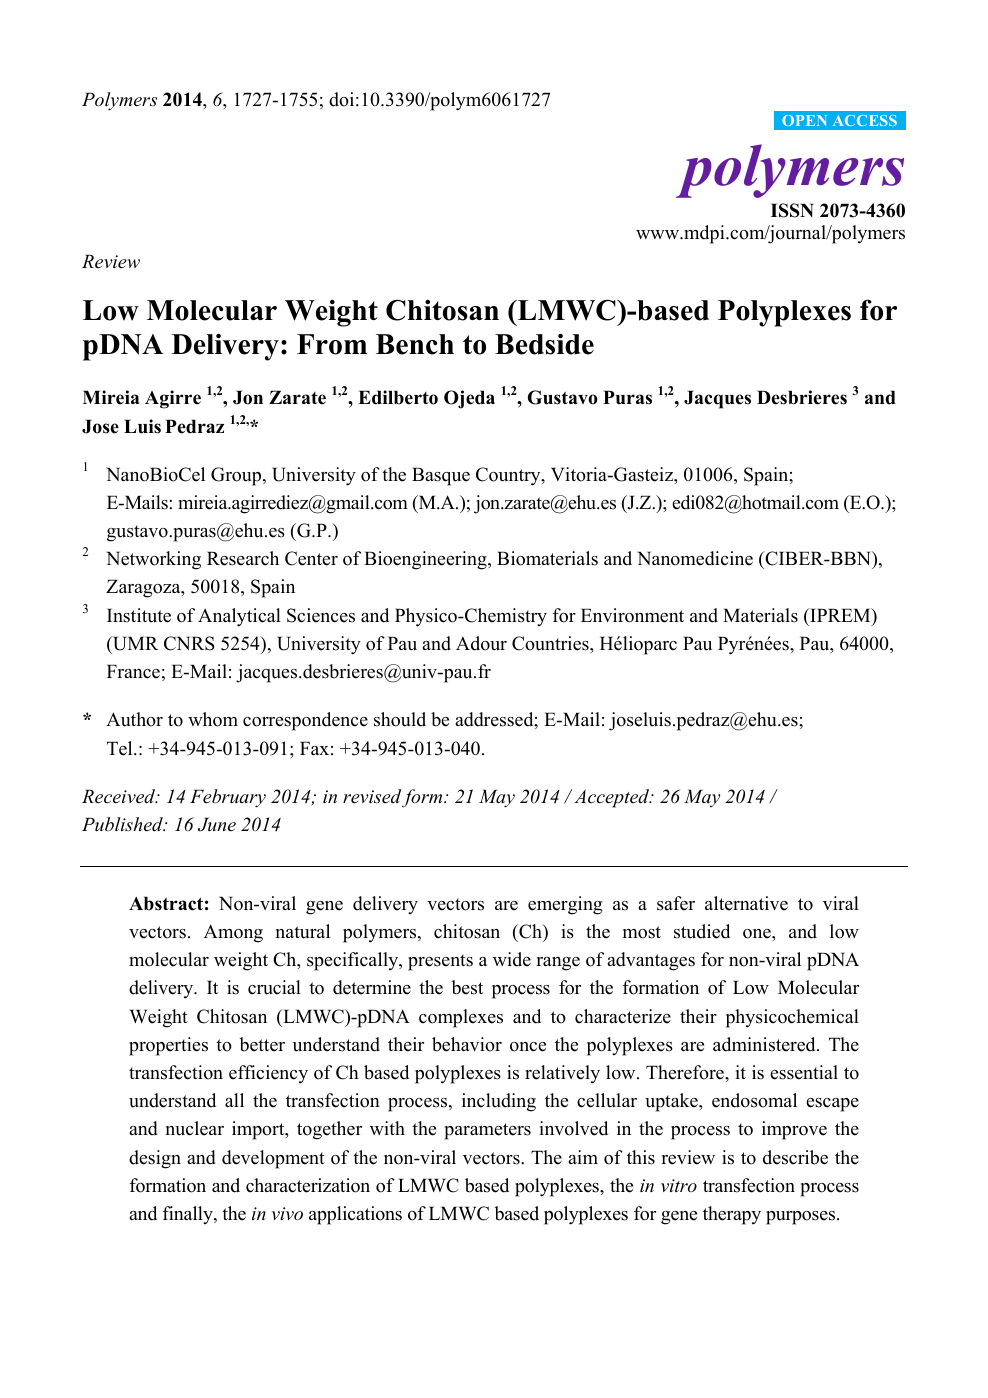 Low Molecular Weight Chitosan LMWC Based Polyplexes For PDNA